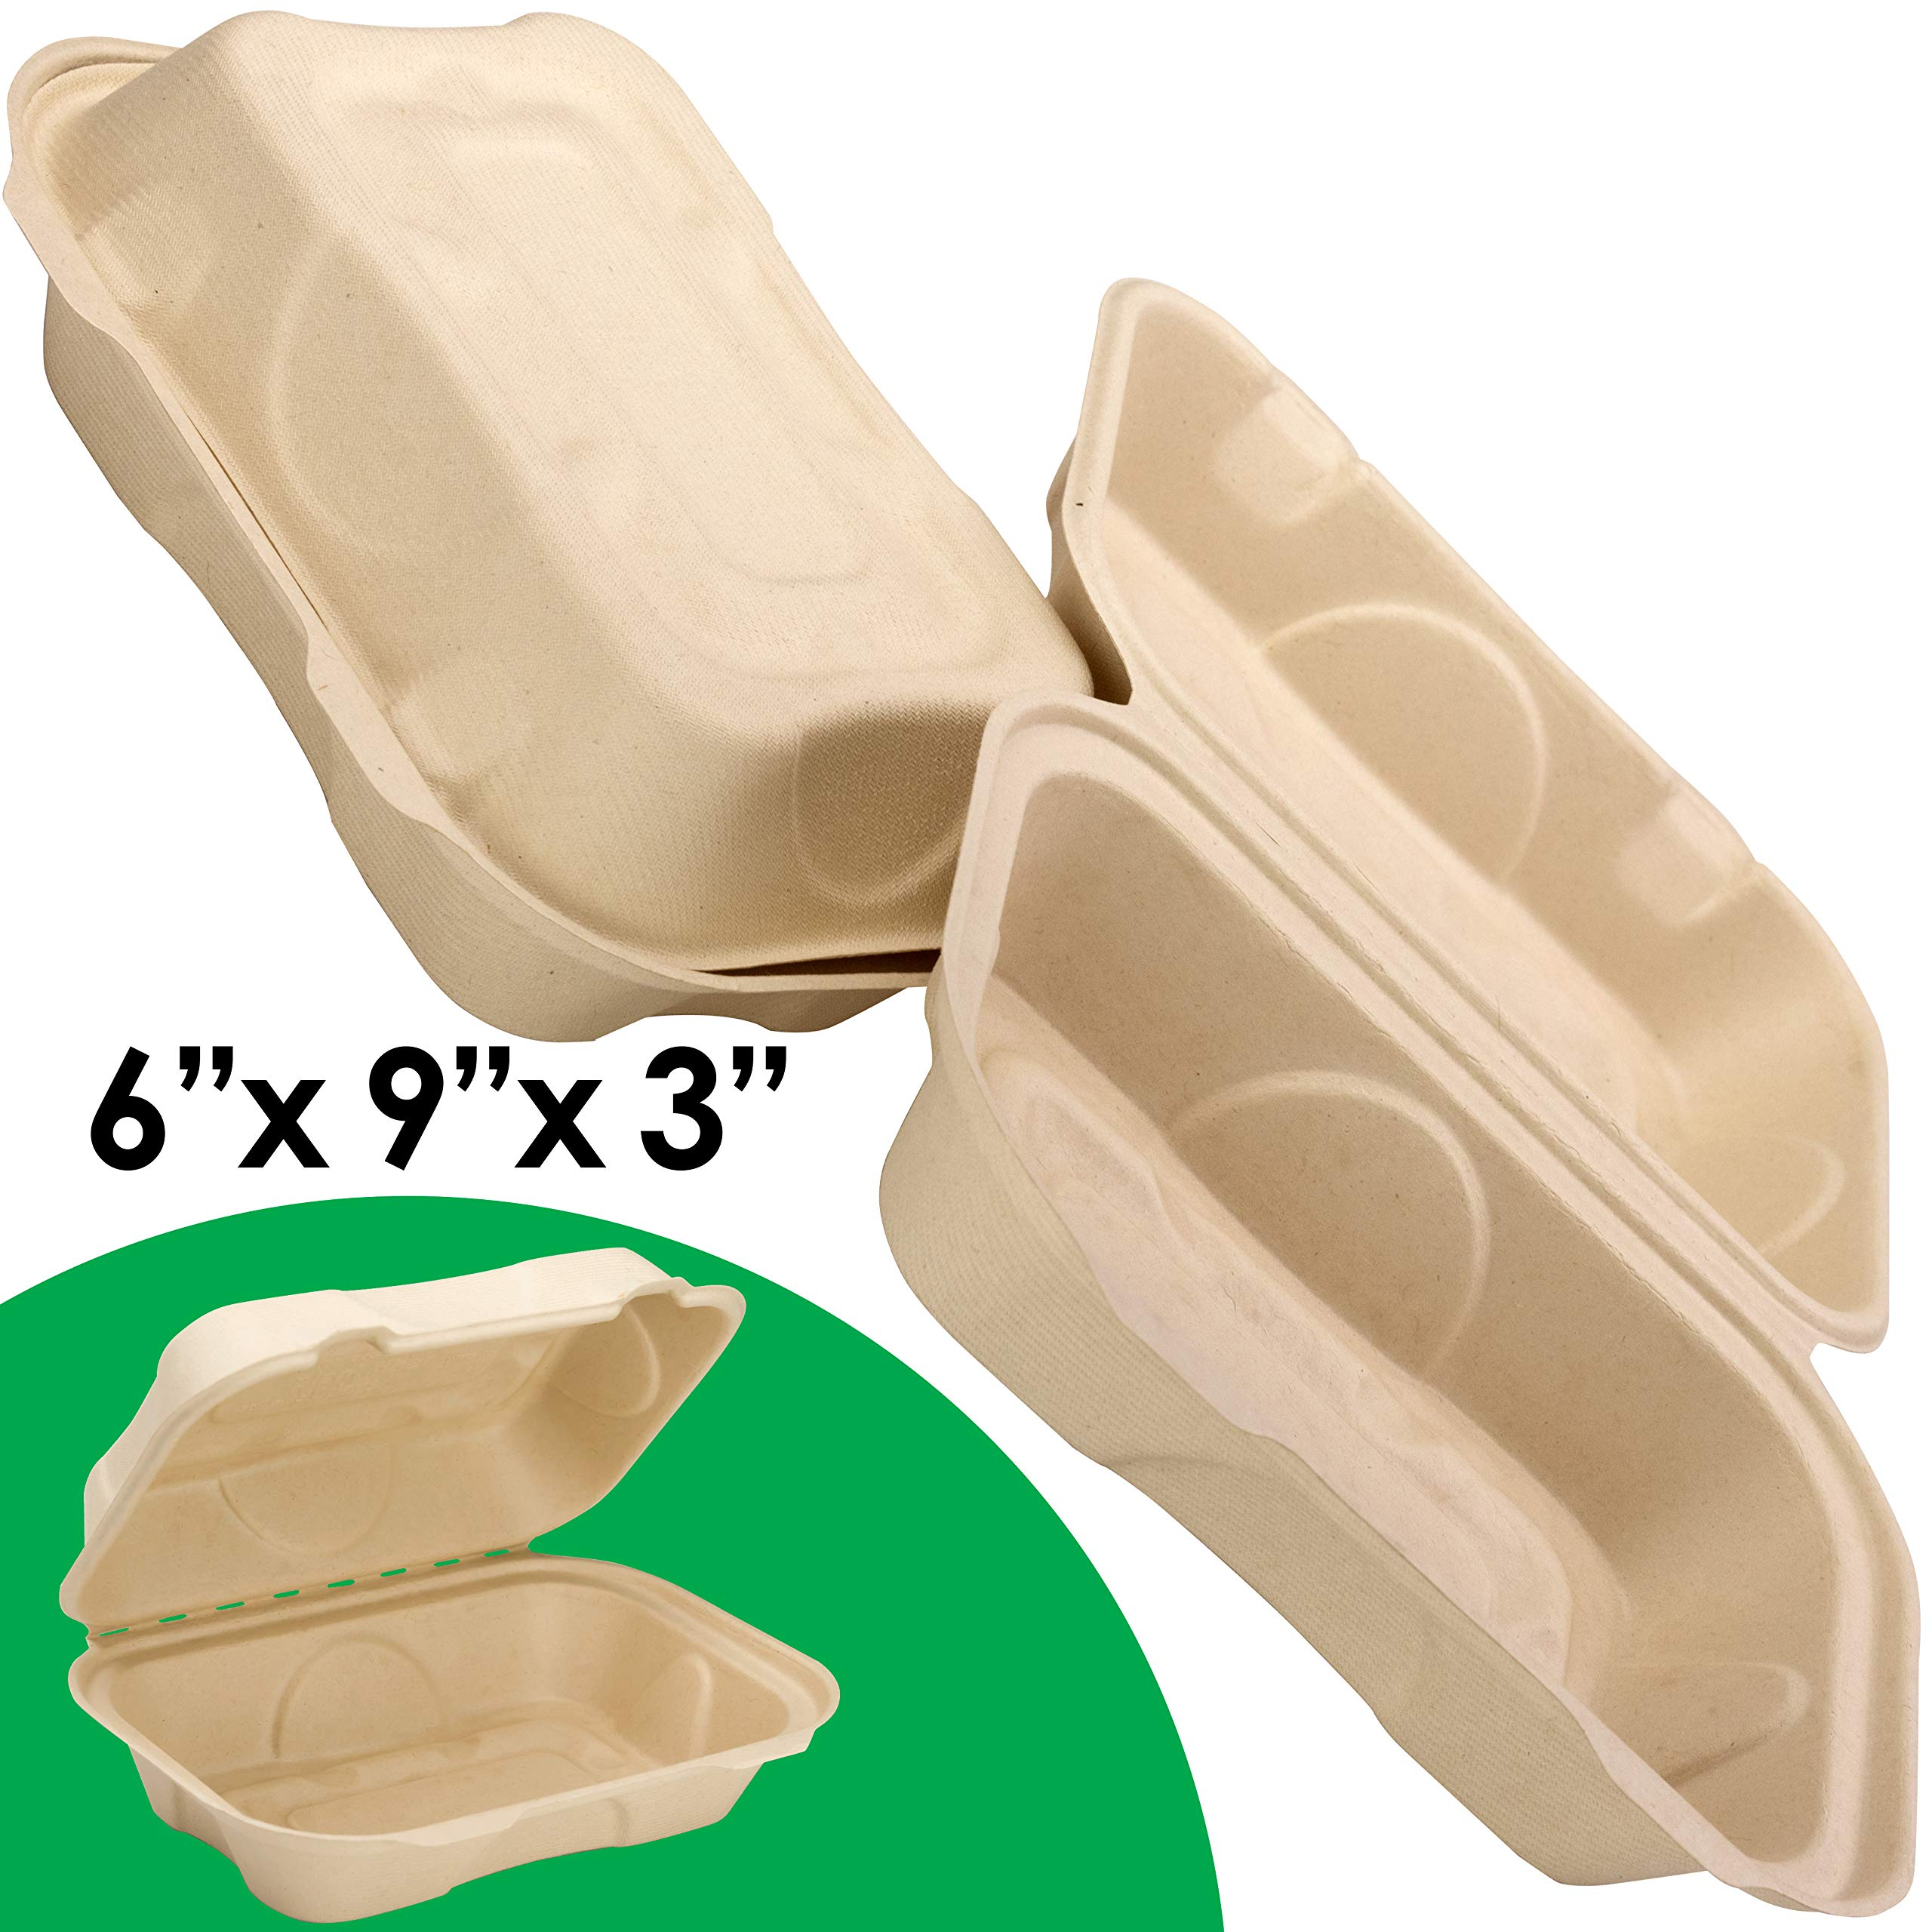 Biodegradable 6x9 Take Out Food Containers with Clamshell Hinged Lid 100 Pack. Microwaveable, Disposable Takeout Box to Carry Meals Togo. Great for Restaurant Carryout or Party Take Home Boxes